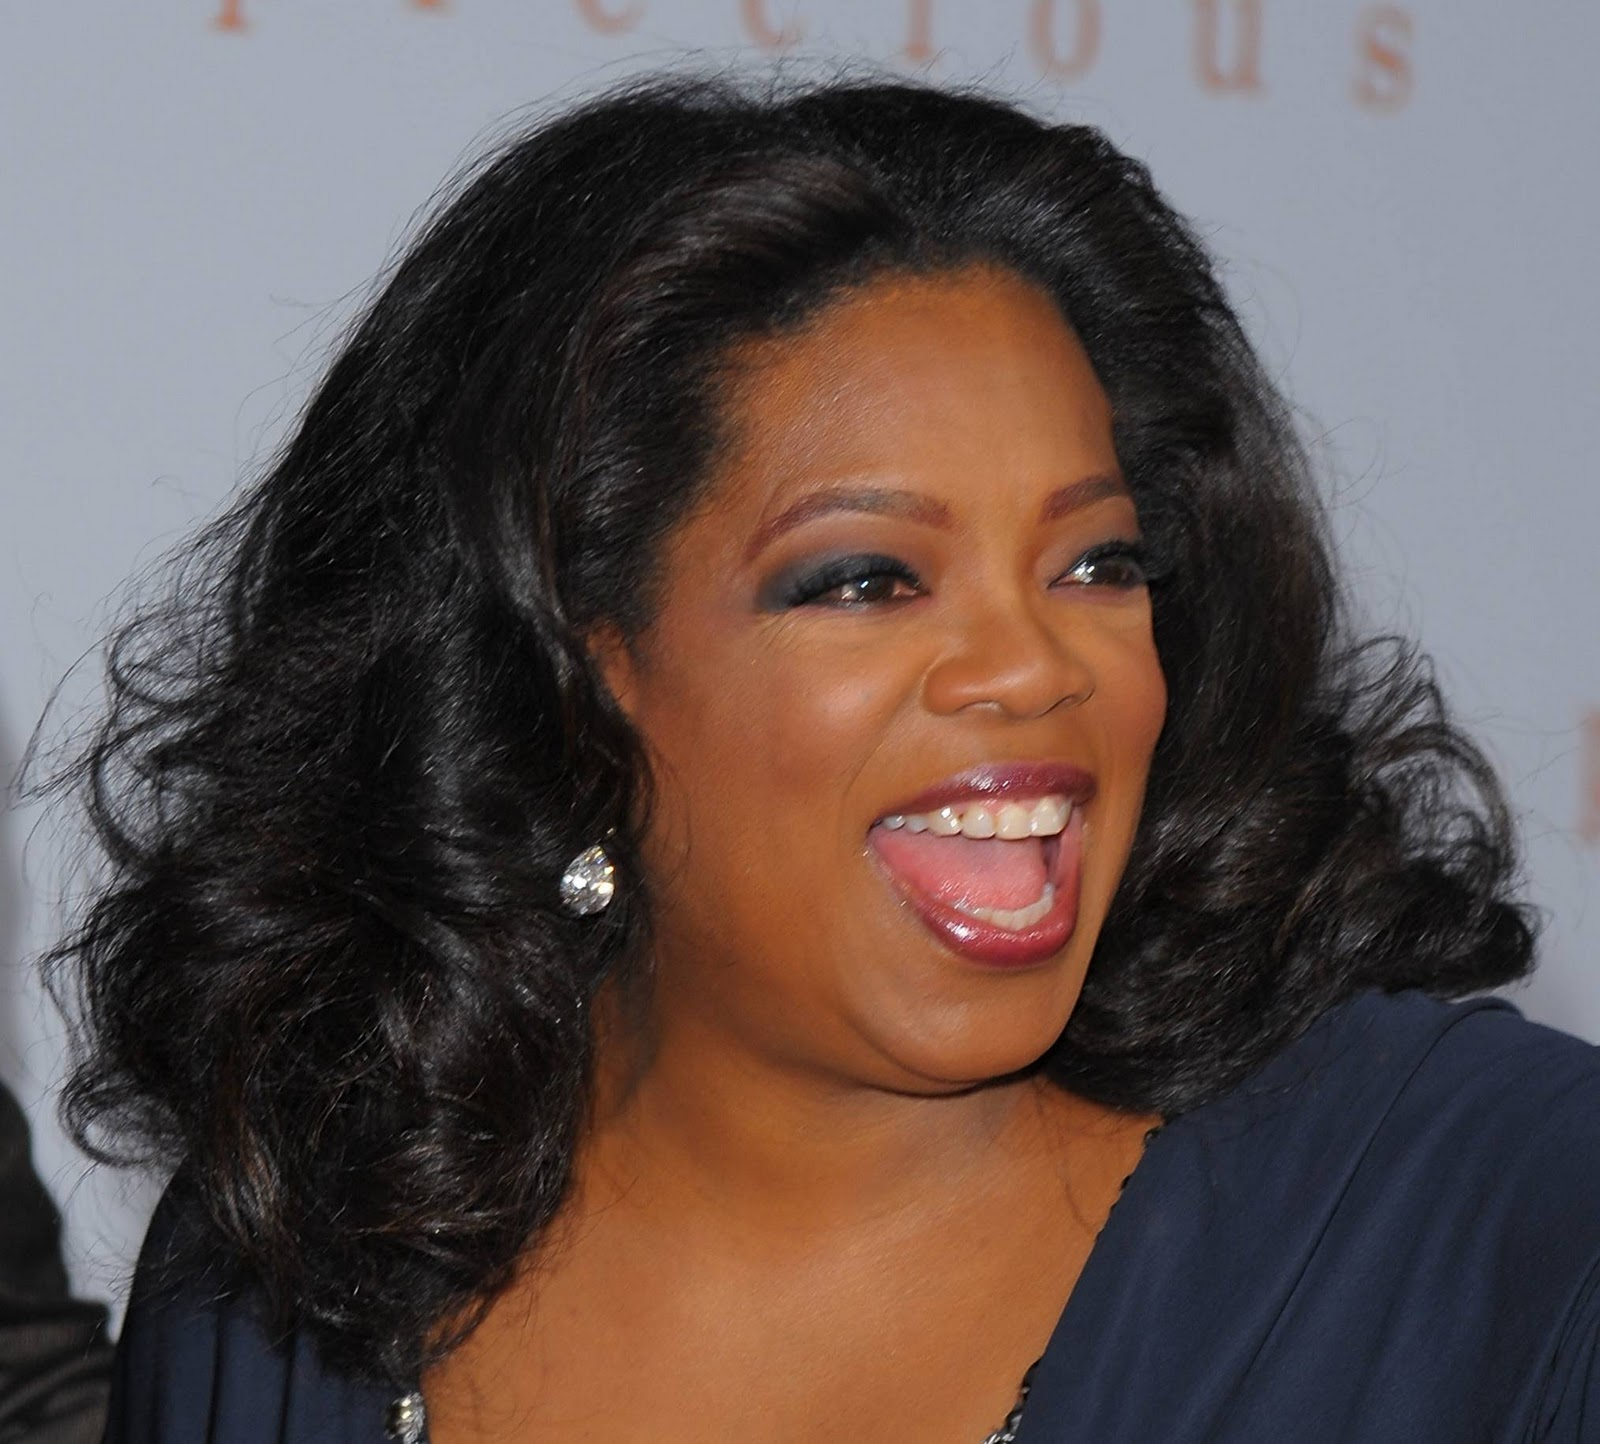 Oprah: Oprah Winfrey Renting Out Her 4,600 Sq Ft Chicago Co-Op